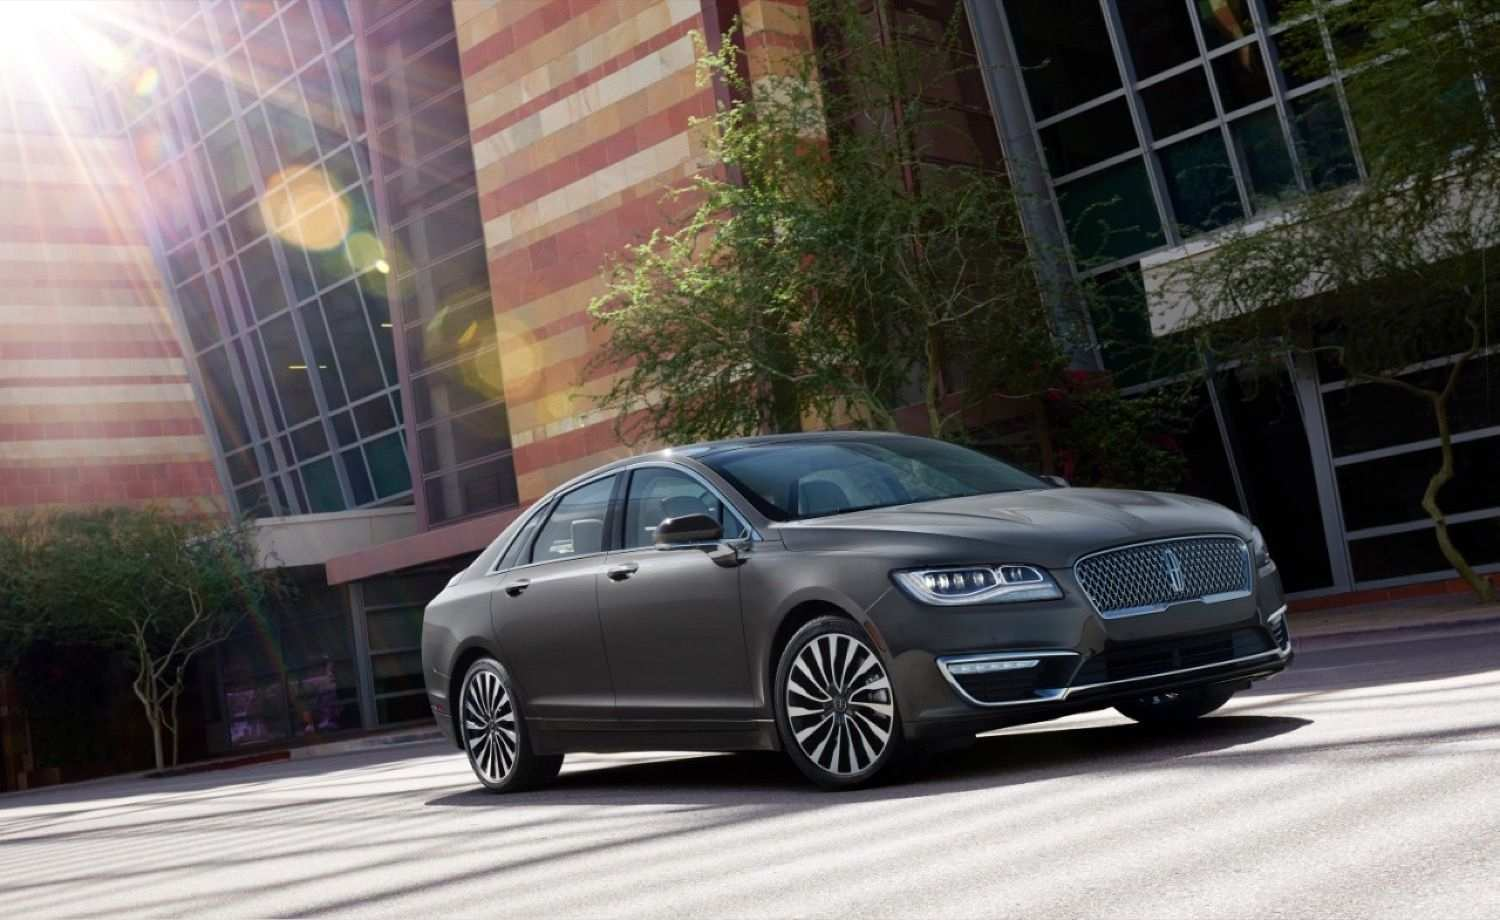 87 All New 2019 Lincoln MKS Spy Photos Style